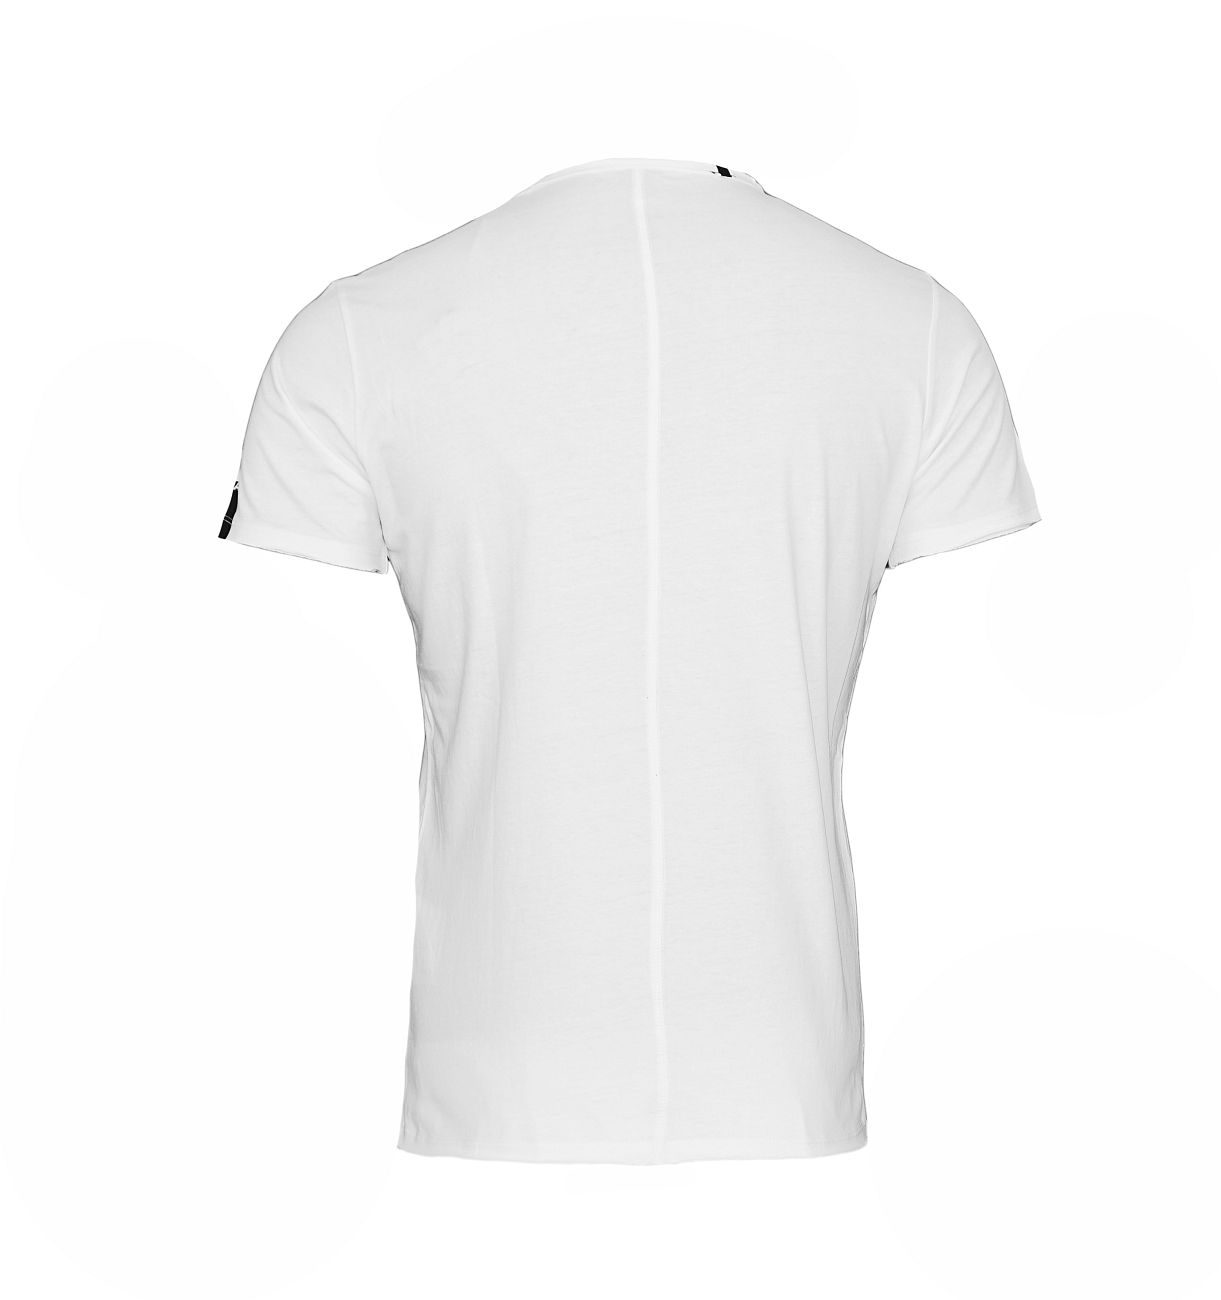 Replay T-Shirt Shirt Rundhals M3590.000 2660.001 white S18-RPT2